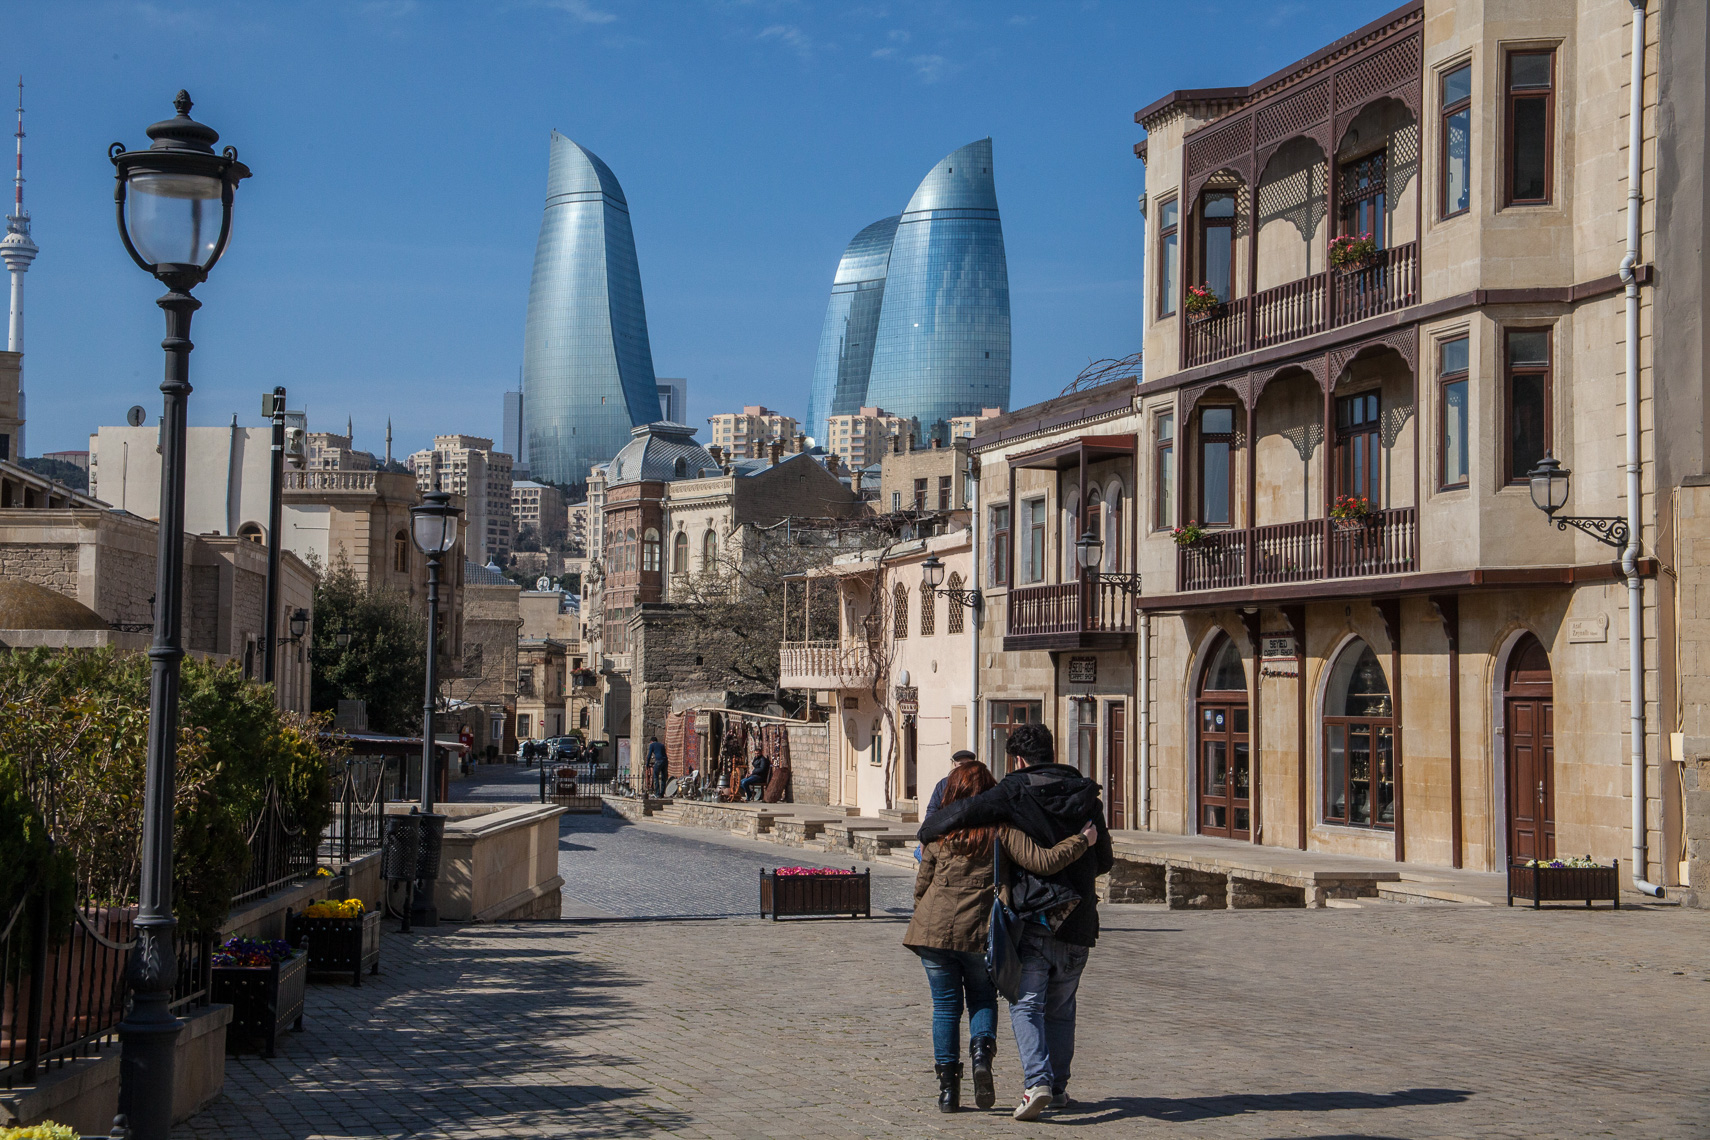 1016Old City, Baku Azerbaijan, the Flame Towers, Architect HOK